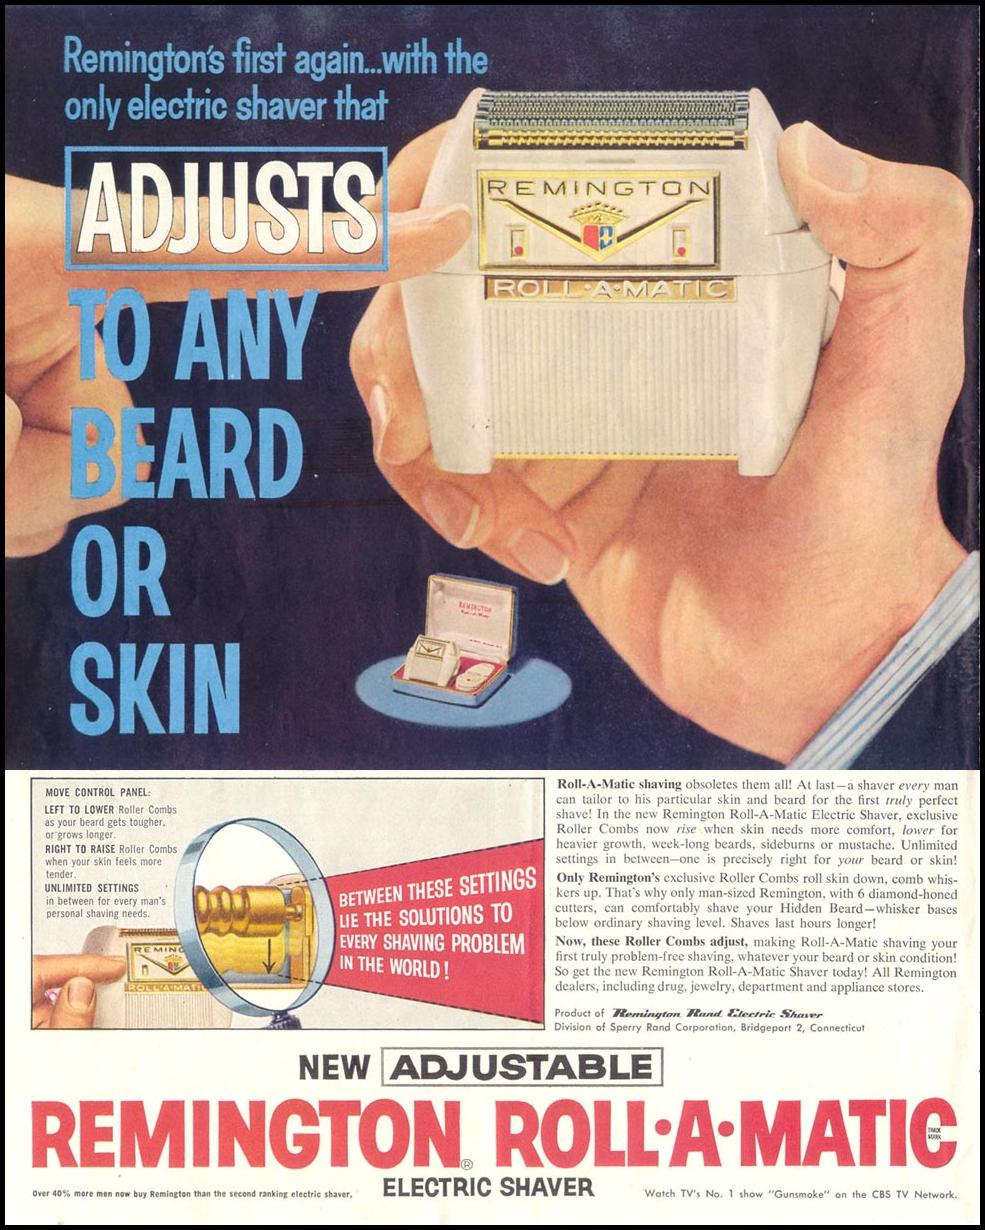 REMINGTON ROLL-A-MATIC ELECTRIC RAZOR SATURDAY EVENING POST 05/02/1959